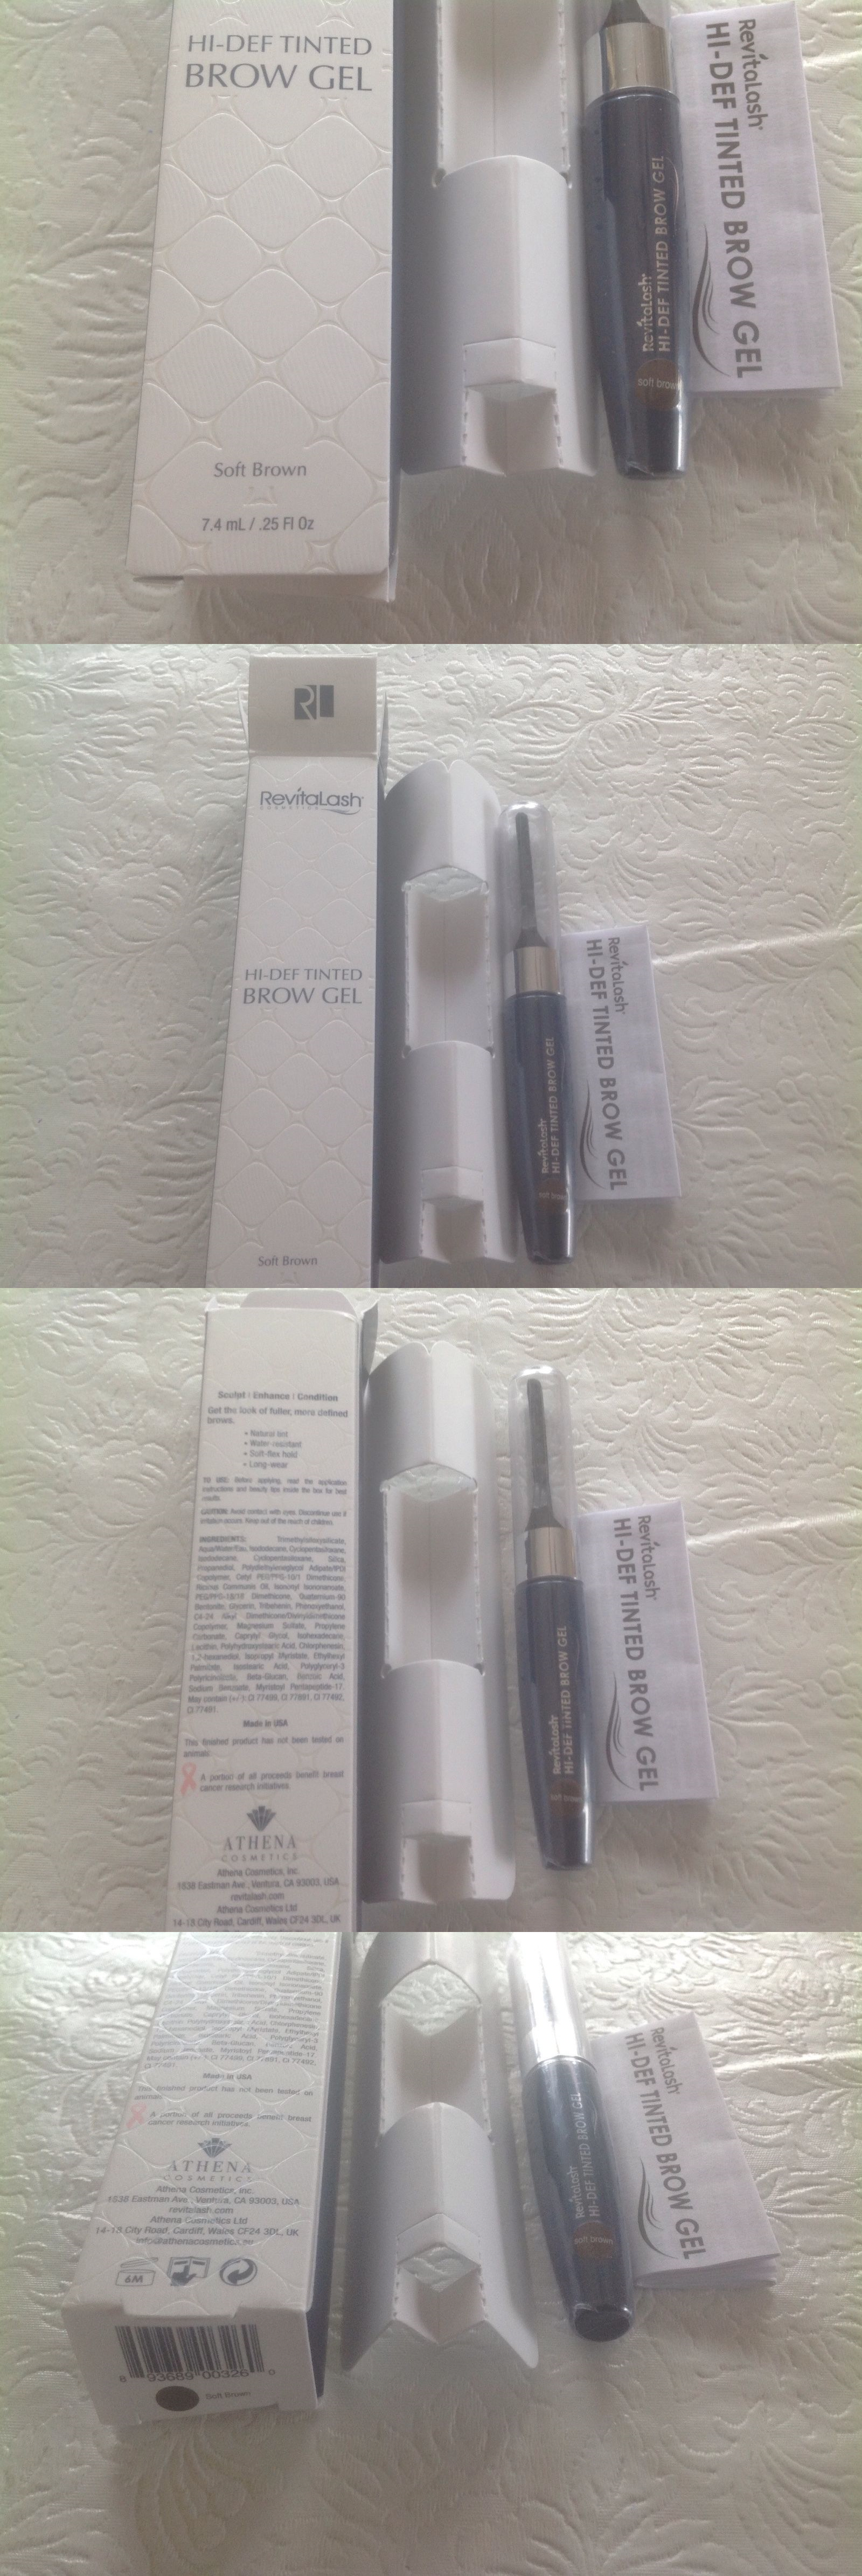 Eyebrow Liner And Definition 2 X New Sealed Revitalash Soft Brown